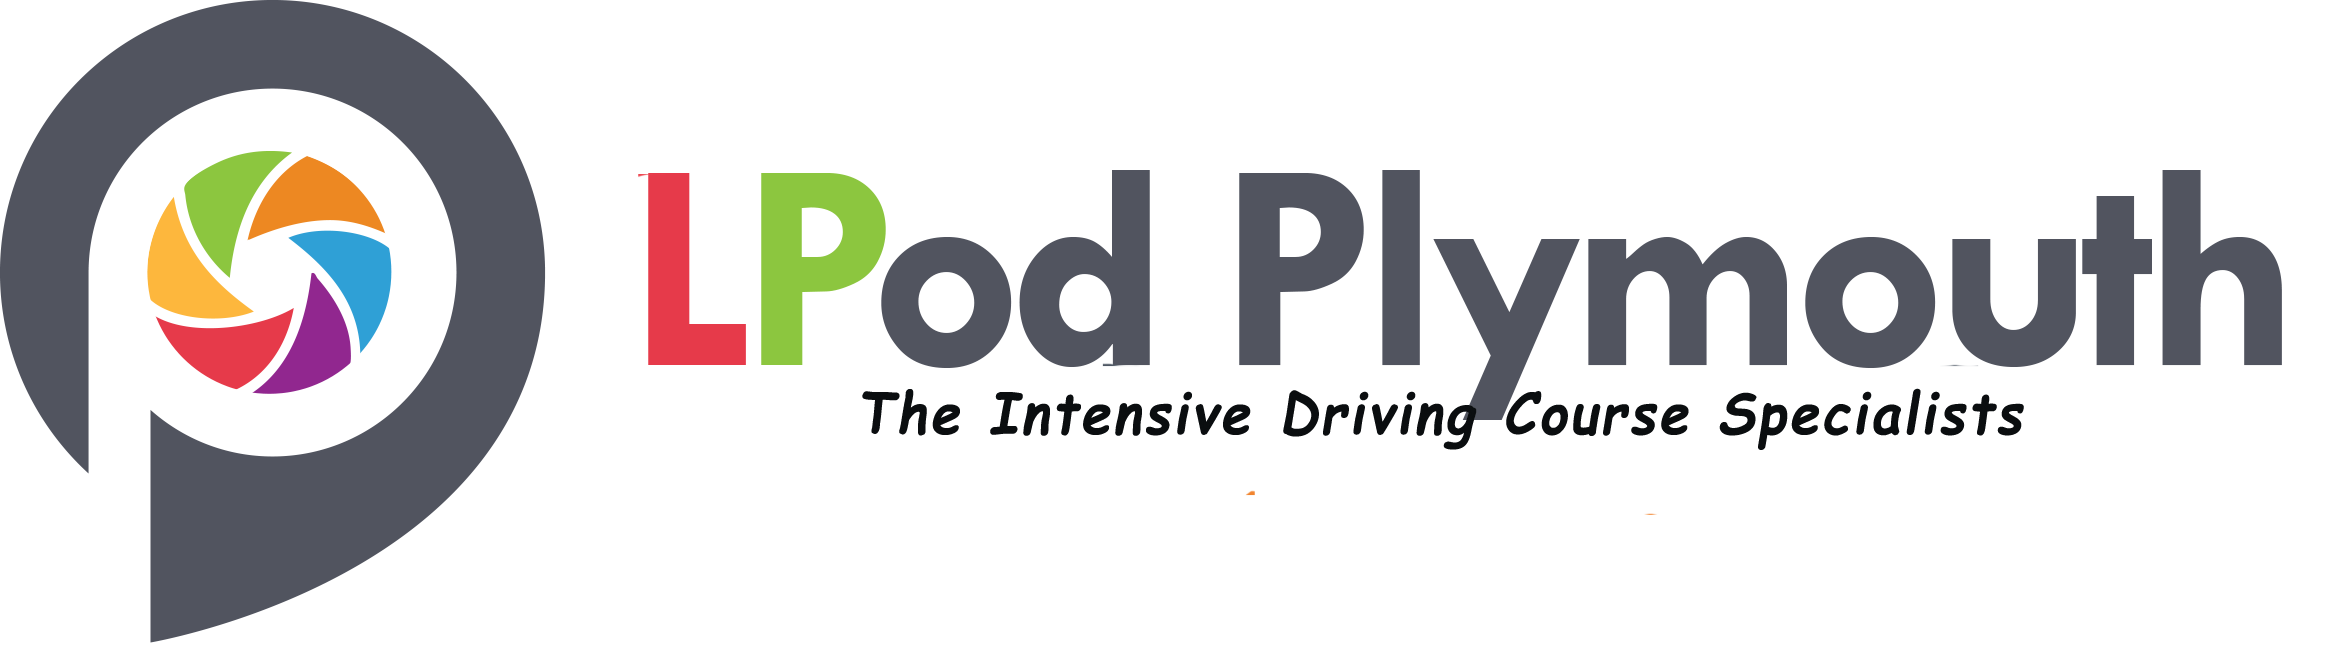 intensive driving courses plymouth, intensive driving lessons plymouth, intensive driving school plymouth